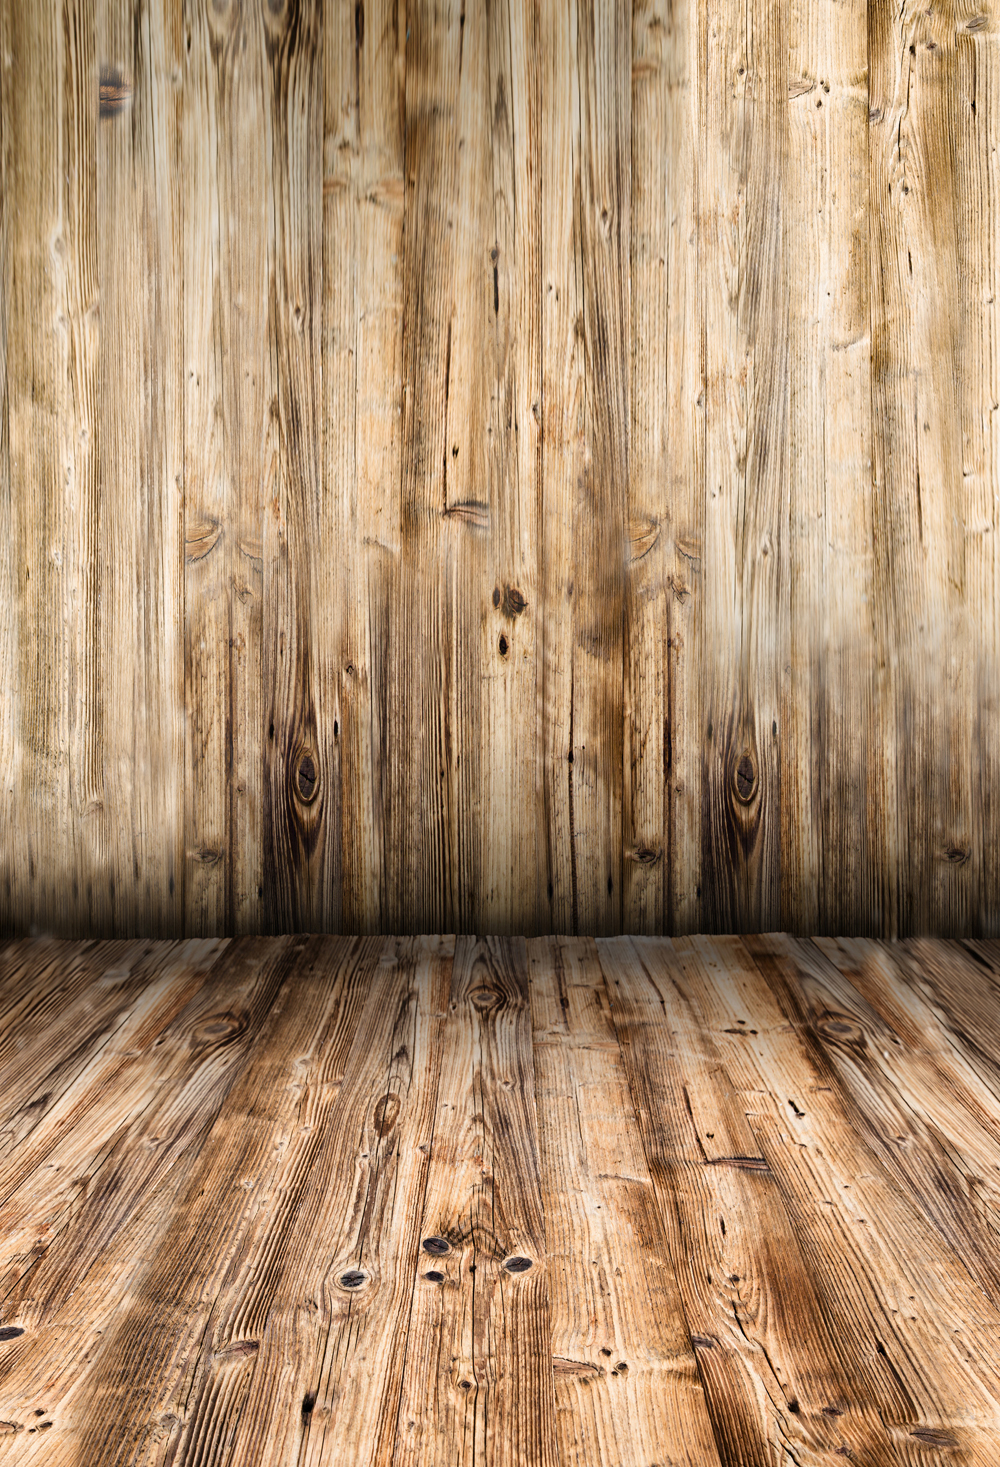 HUAYI Background Art Fabric Brown Wooden Floor Backdrop Photography For Newborn Background XT-5711